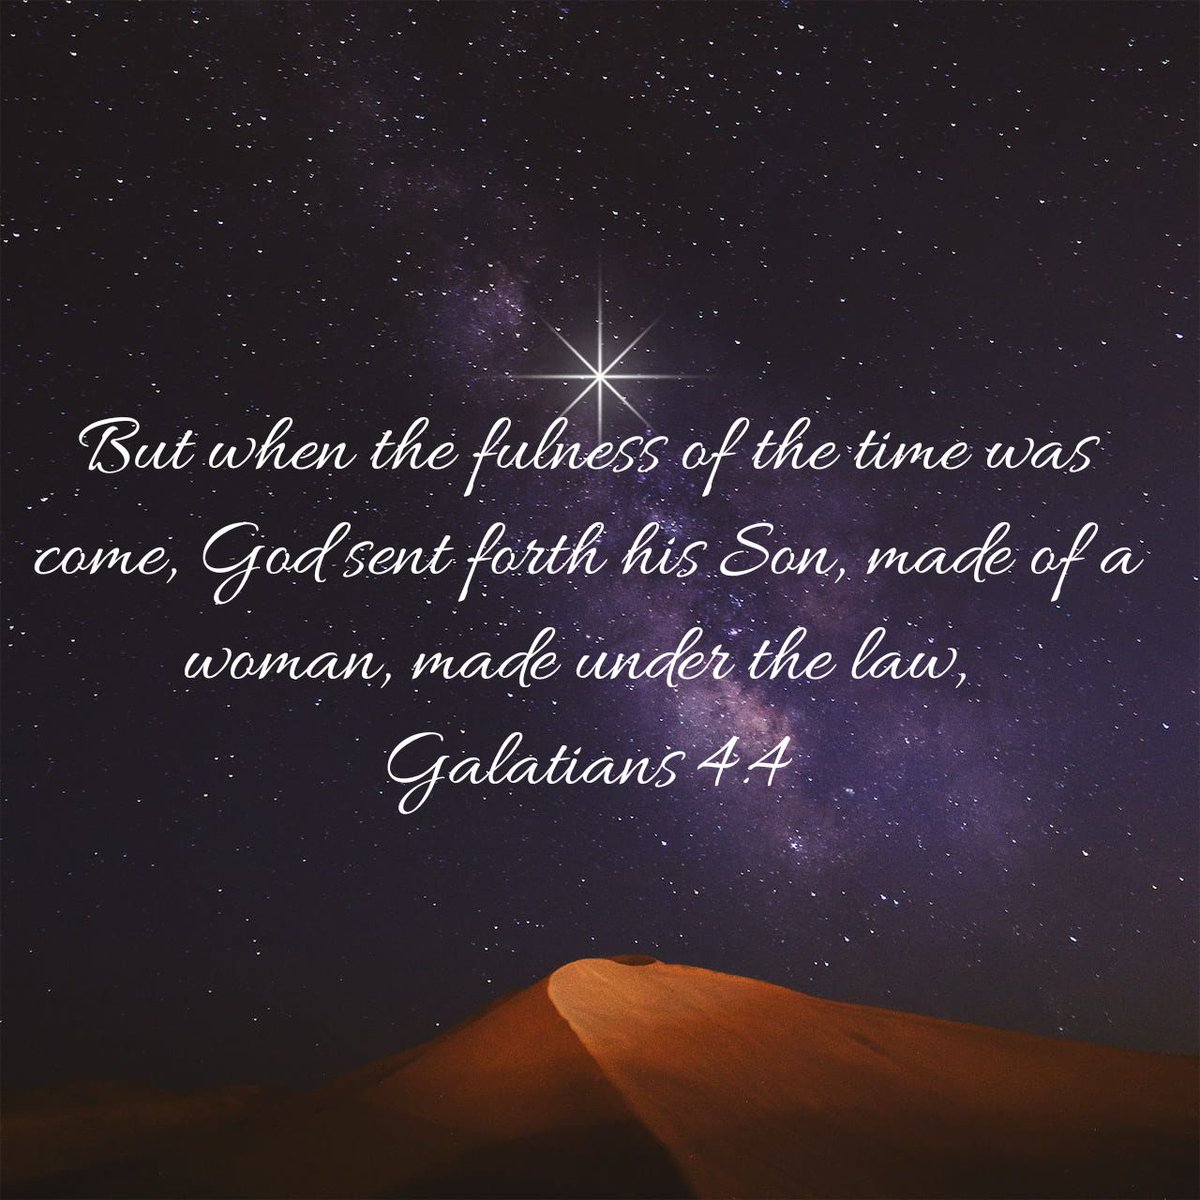 But when the fulness of the time was come, God sent forth his Son, made of a woman, made under the law, Galatians 4:4 KJV #SaturdayMorning #SaturdayThoughts #Jesus